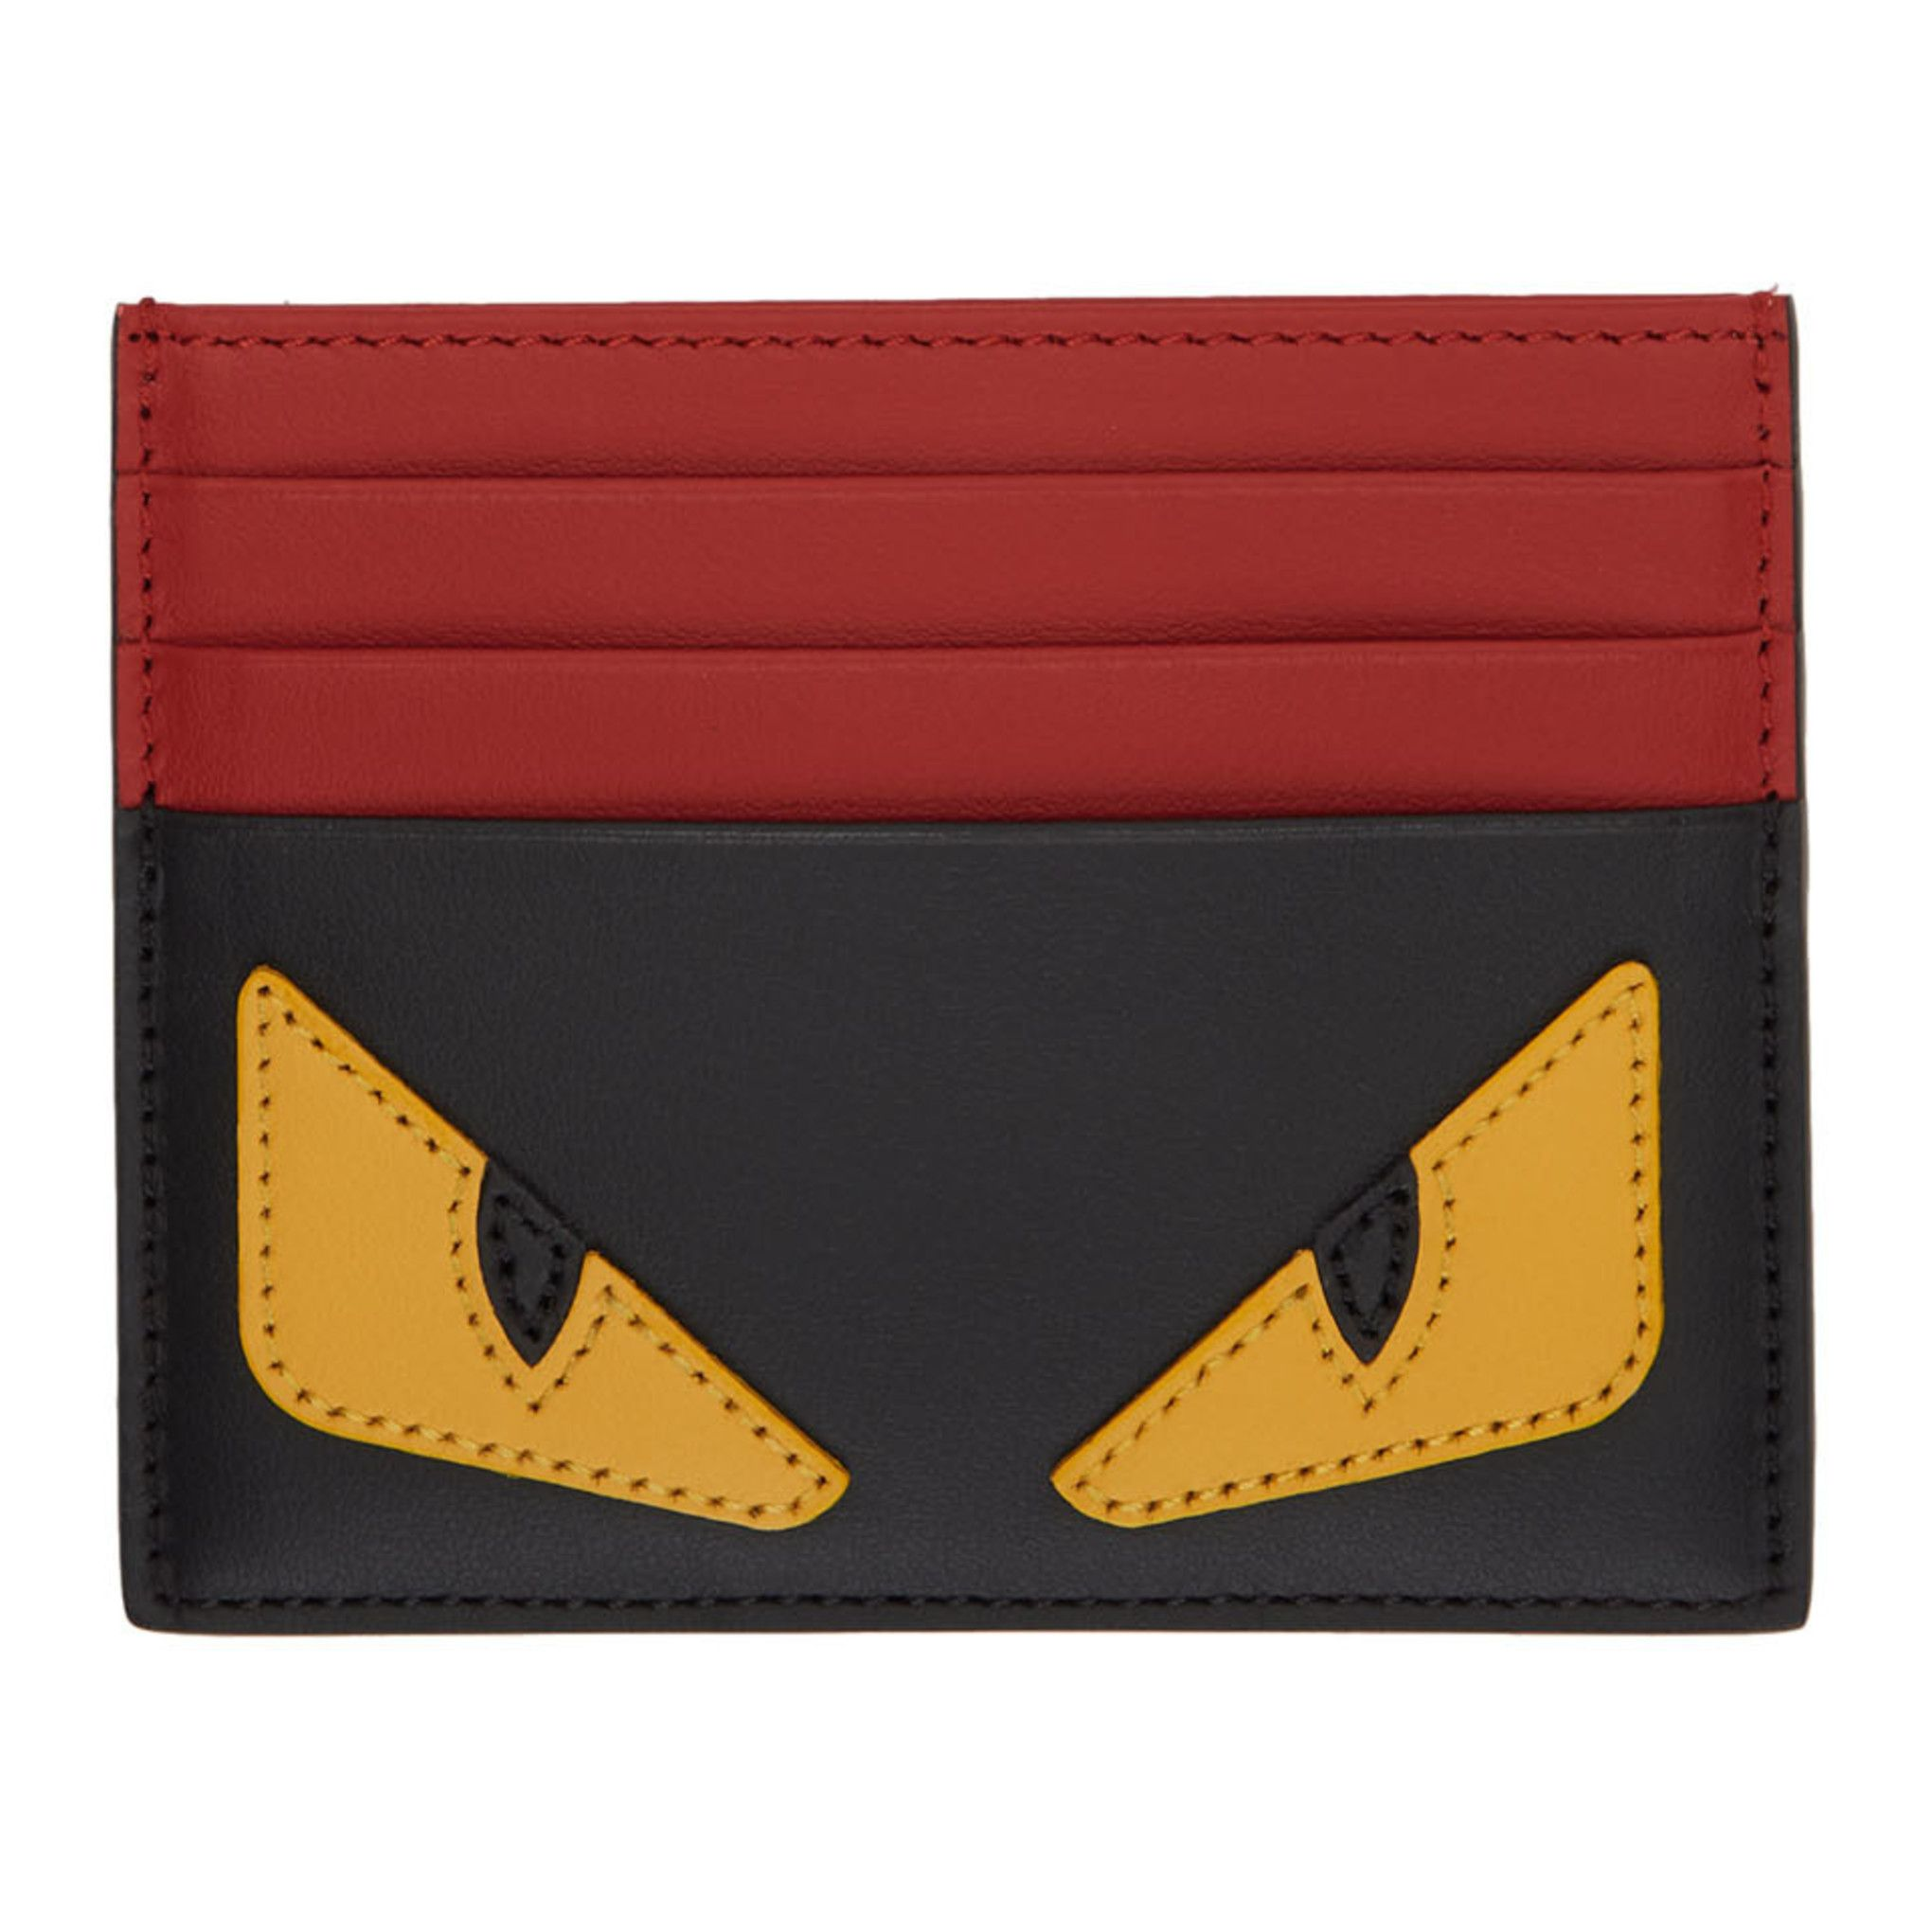 8a5b4dba59 Fendi Black and Red Bag Bugs Card Holder | Clothing | Red bags ...